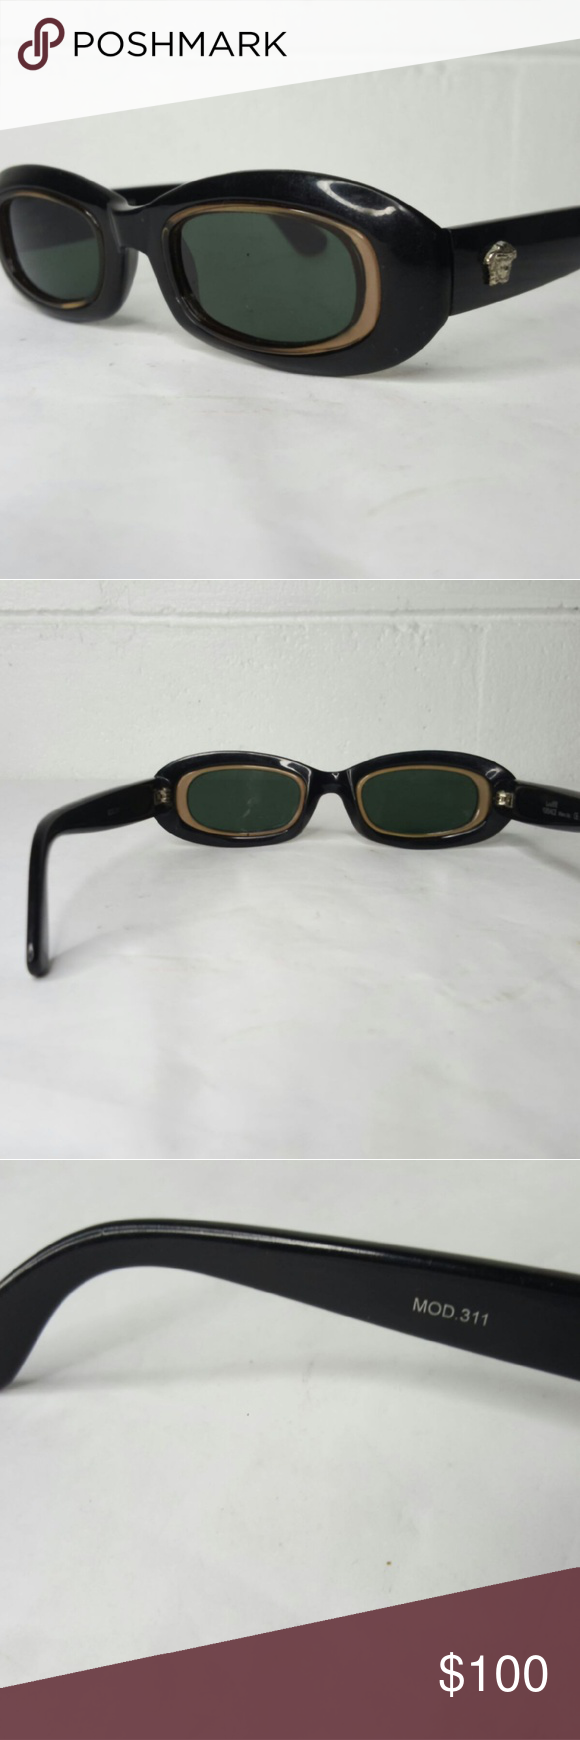 1ab2cf1f1083 GIANNI VERSACE Sunglasses MOD.311 Selling a pre-owned pair of GIANNI ...